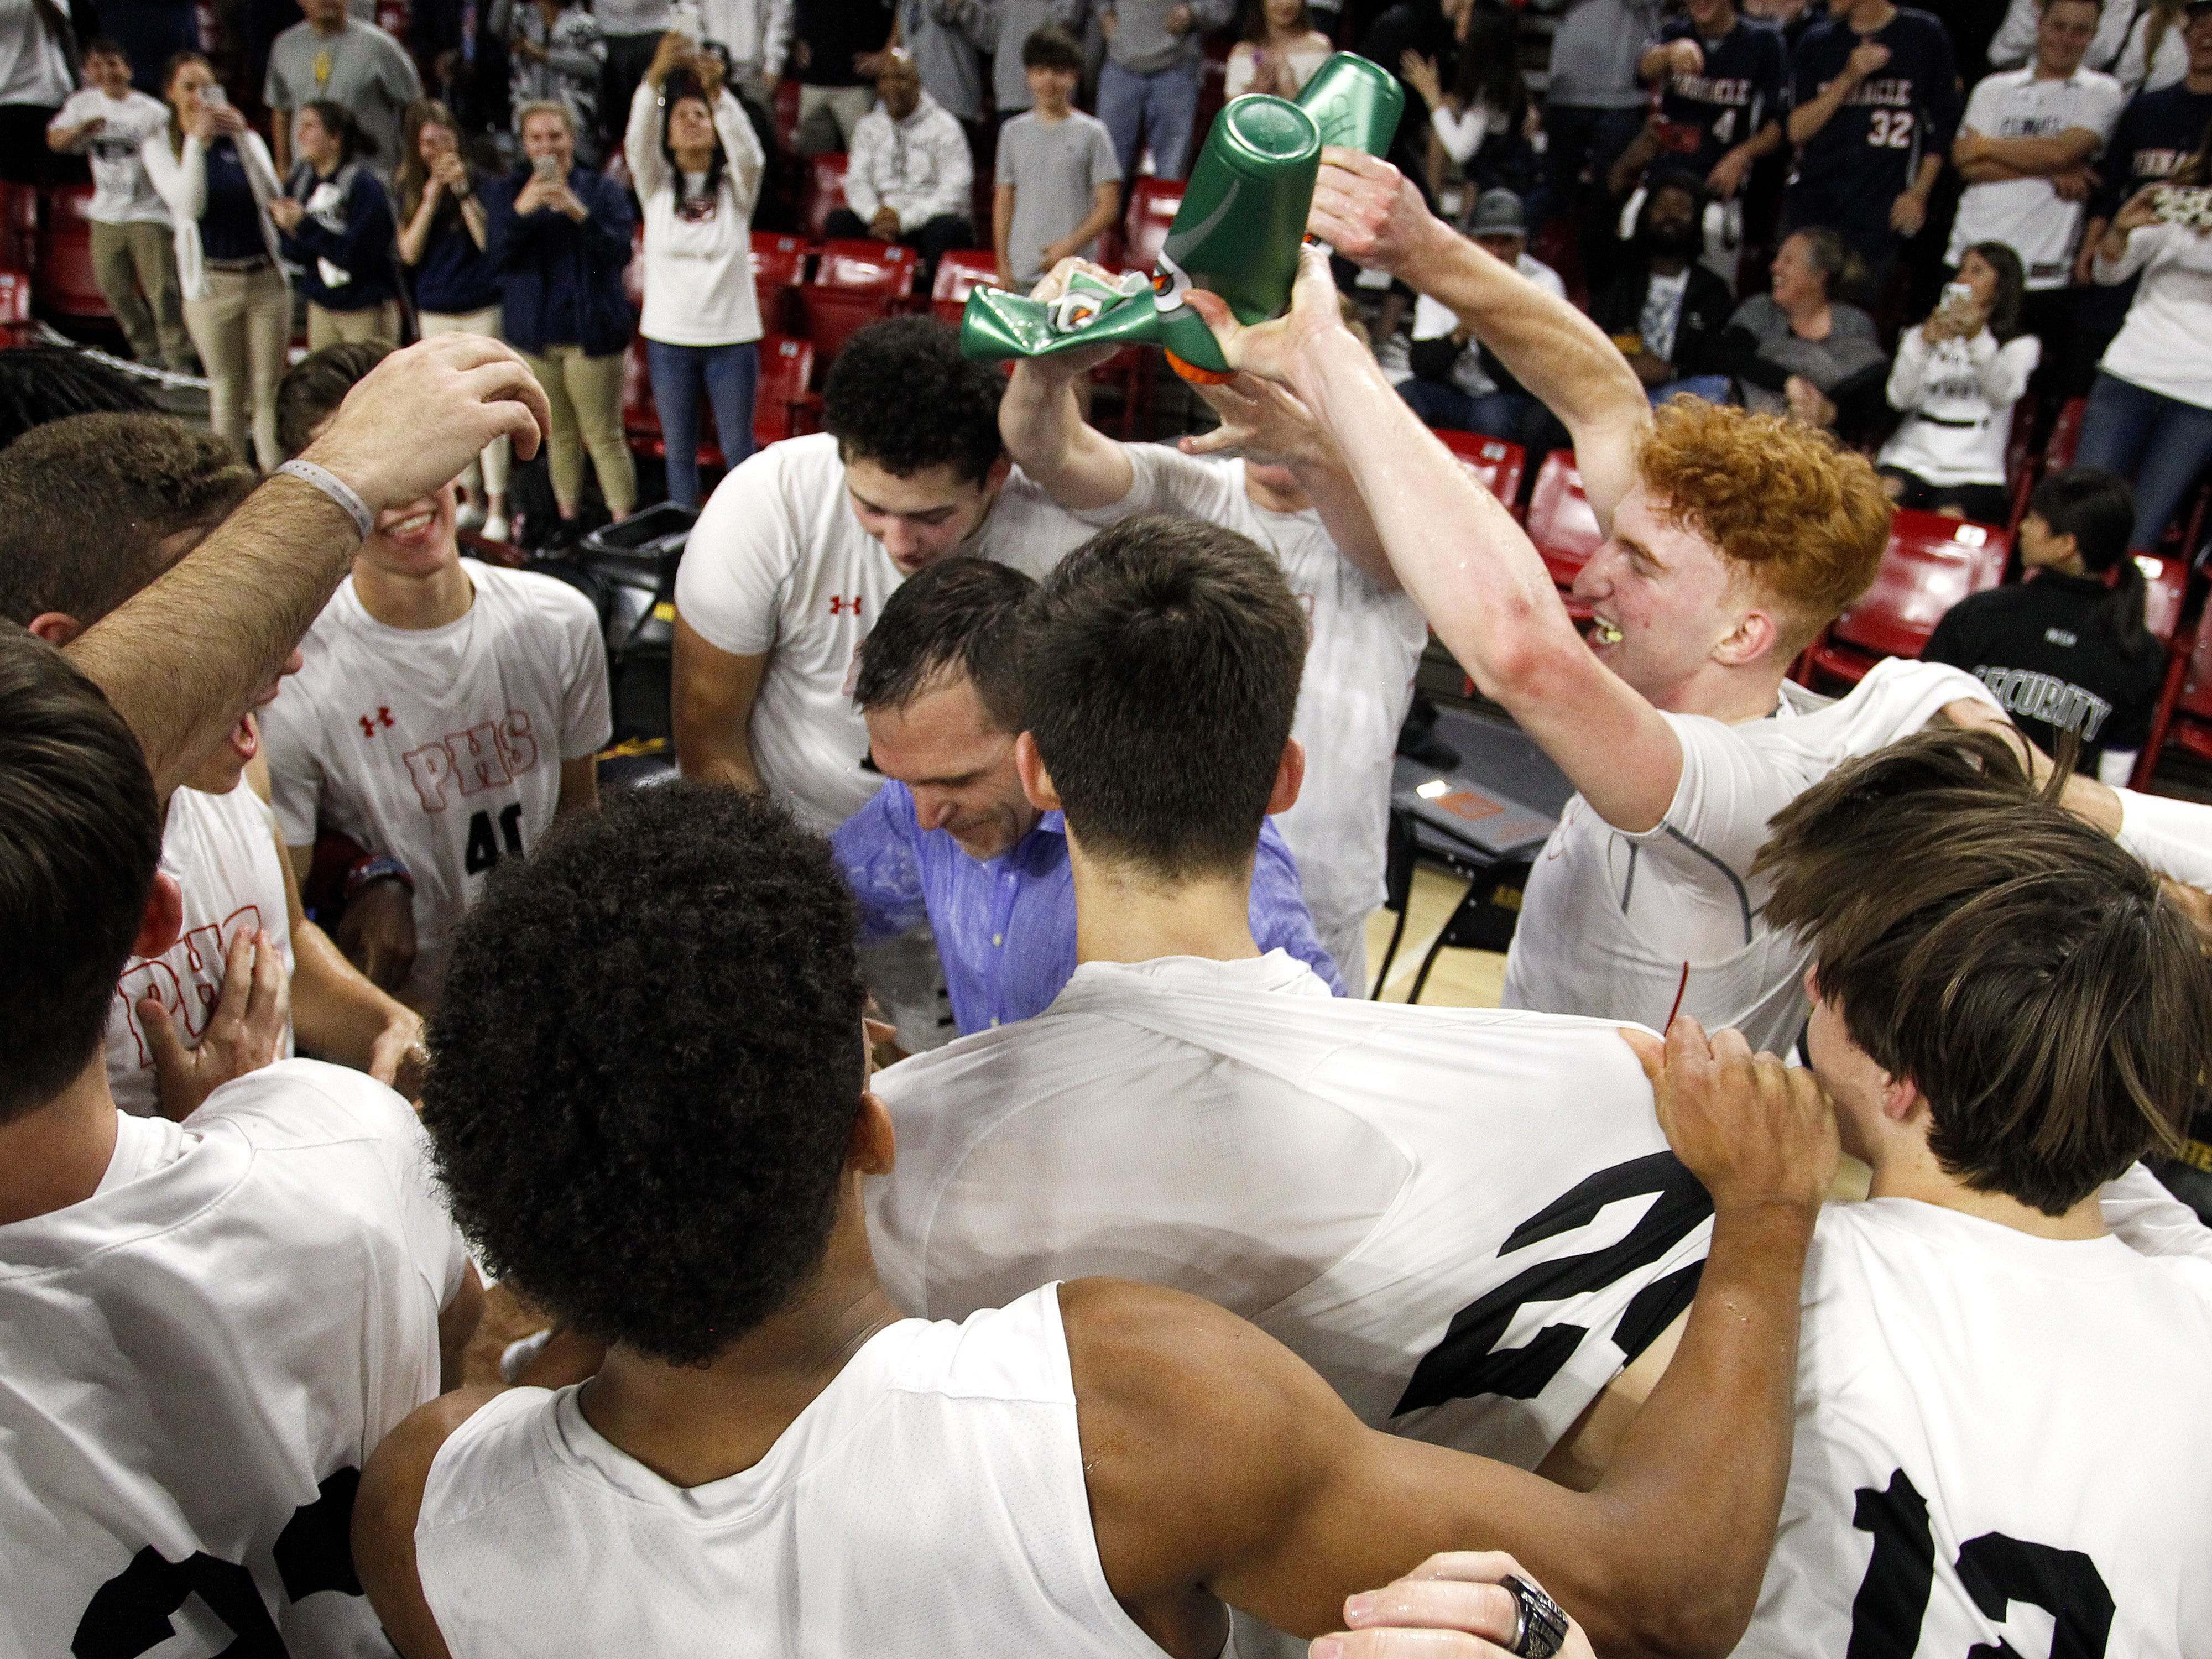 Pinnacle players douse their coachÊCharles Wilde with a water after their 83-64 win over Chaparral in the 6A Boys State Championship at Wells Fargo Arena in Tempe Tuesday, Feb 26, 2019.